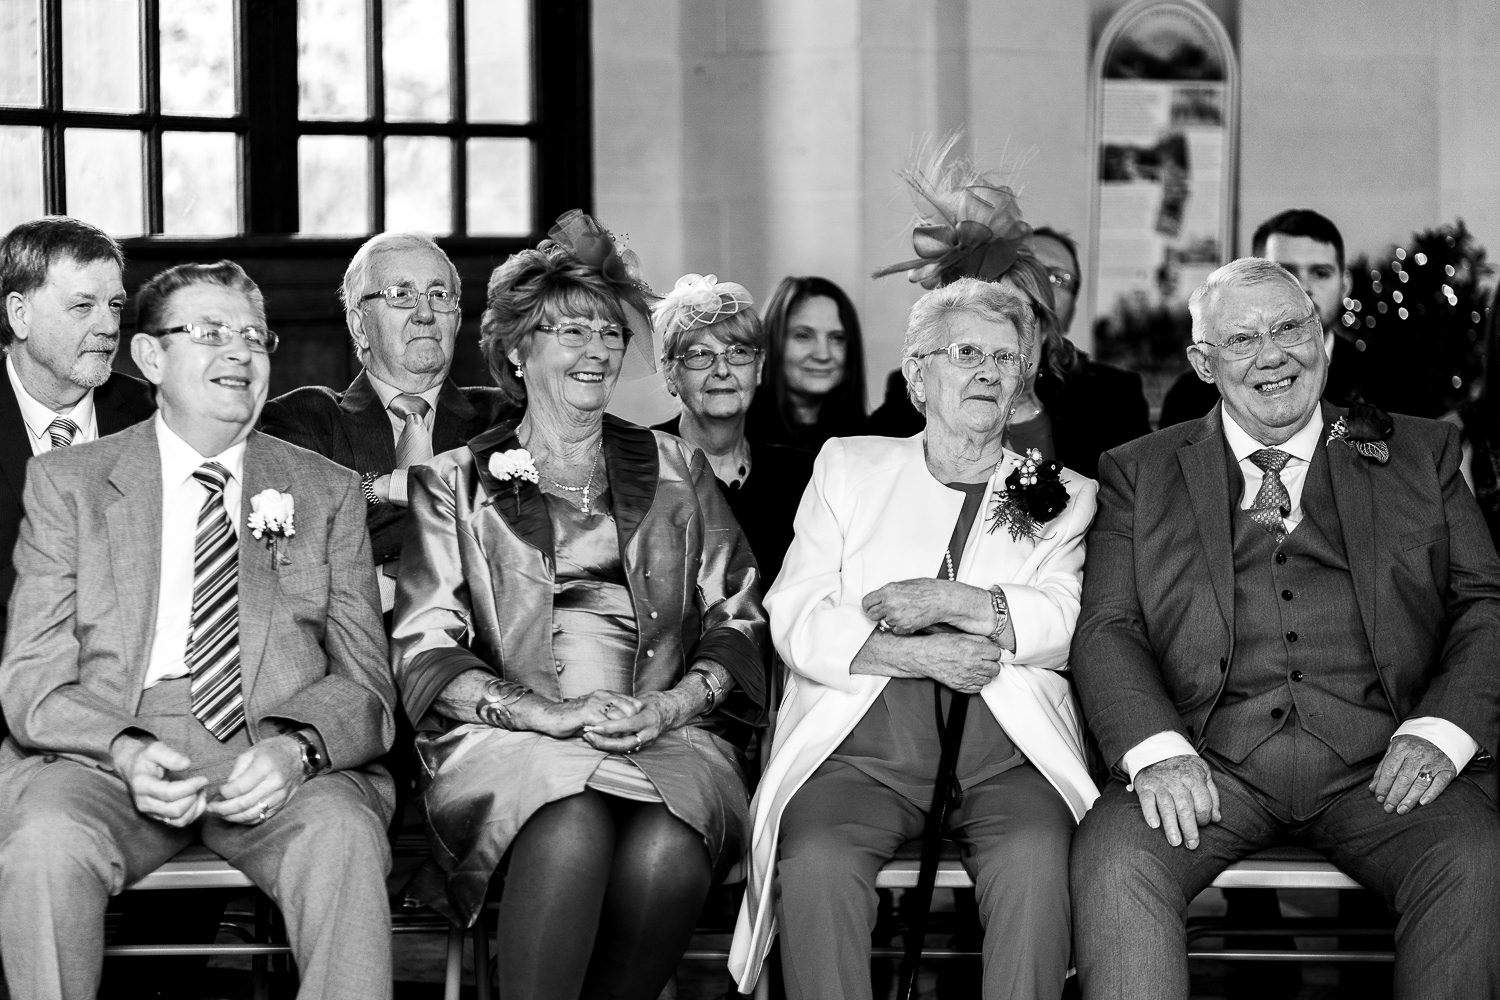 Grandparents laughing during the service